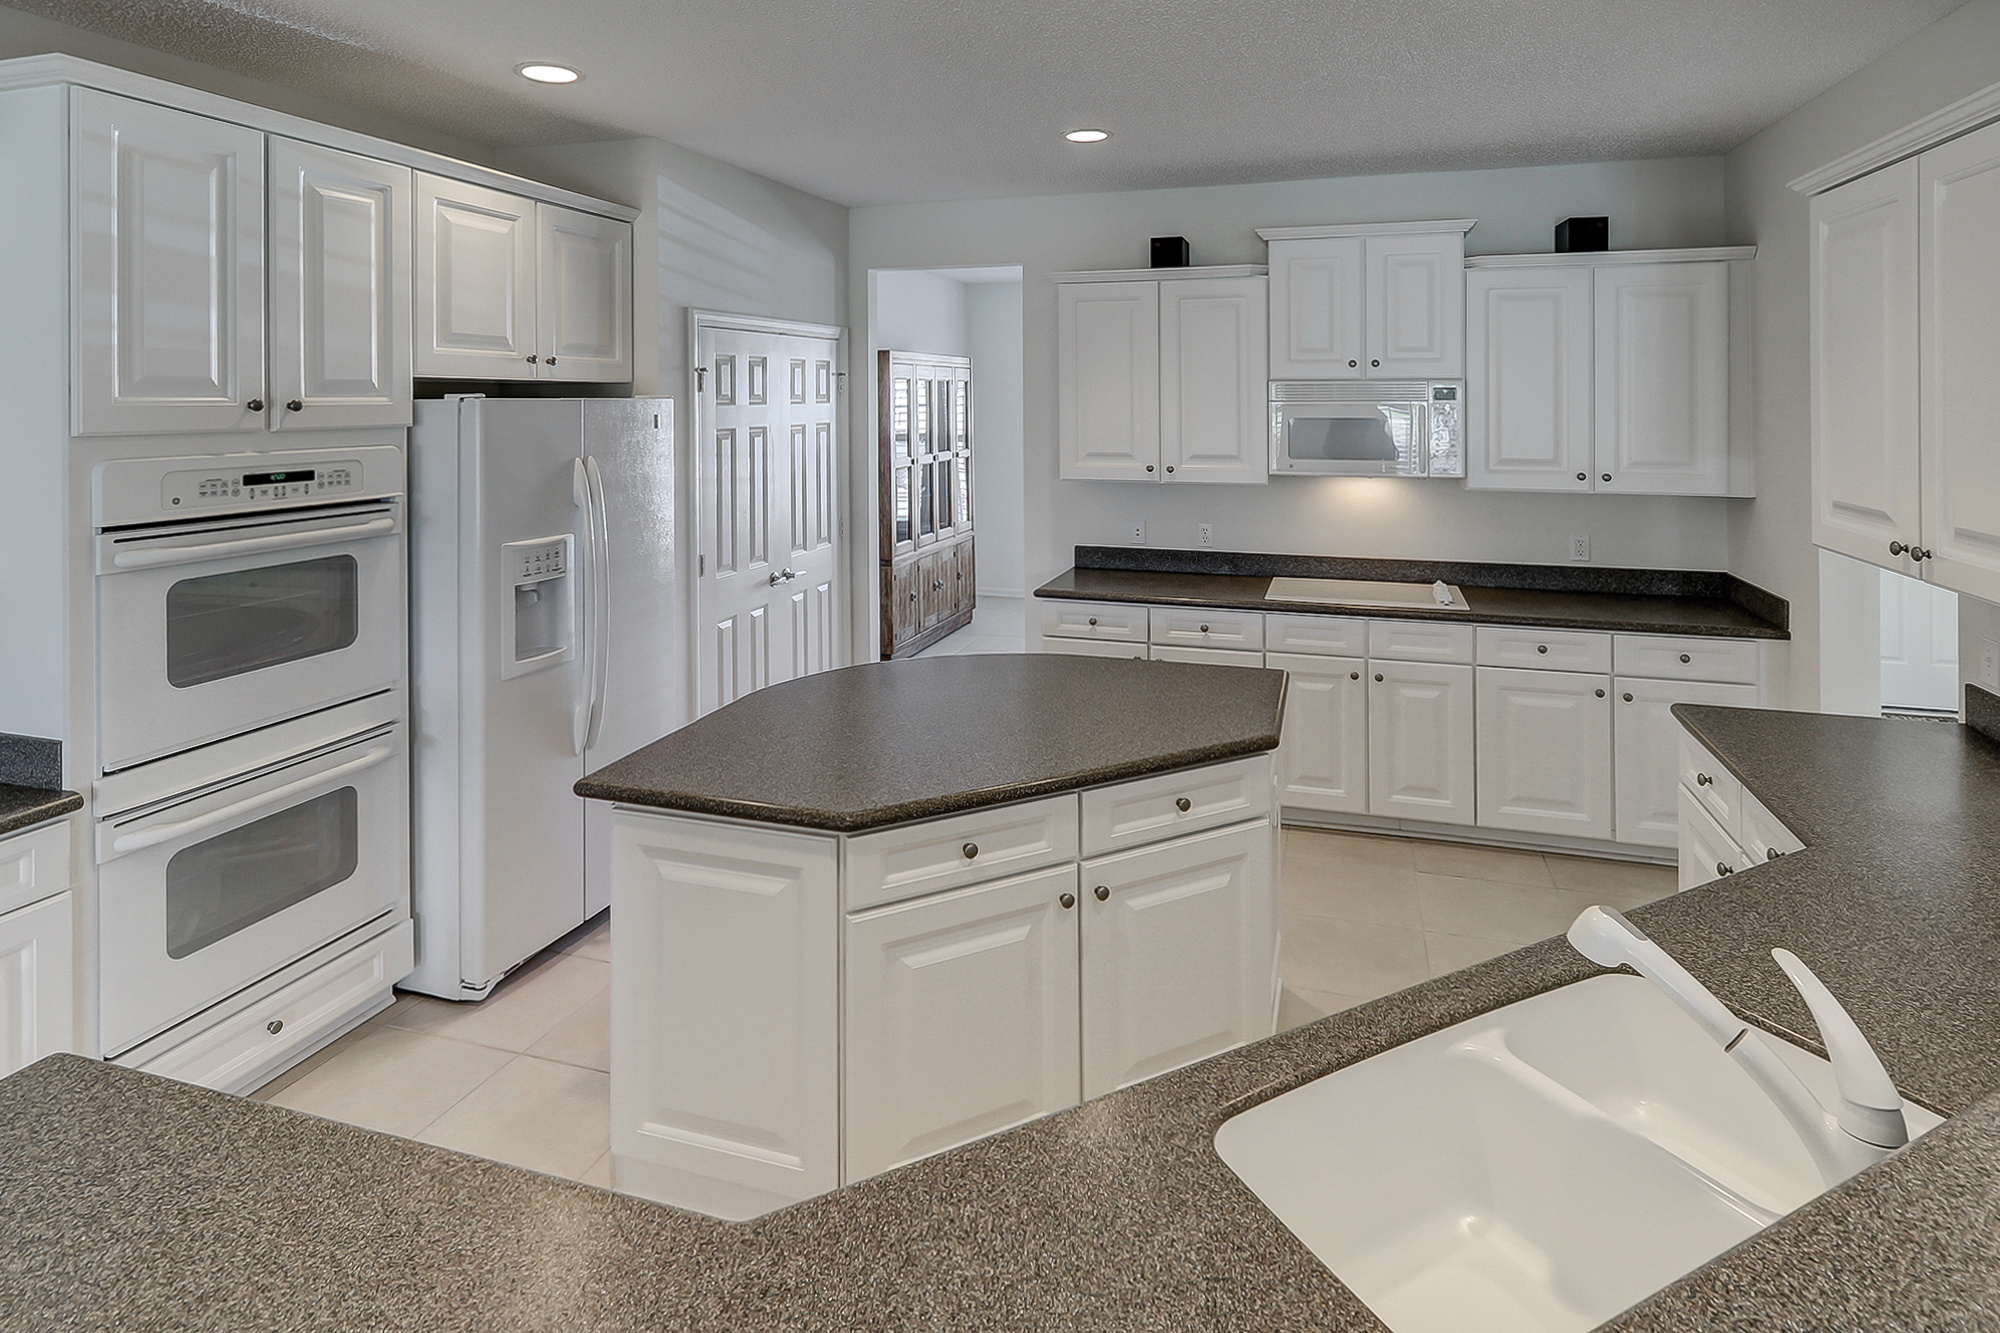 Double Ovens, Roll Outs and Solid Surface Counter Tops are a few of the options in this Sun City Kitchen